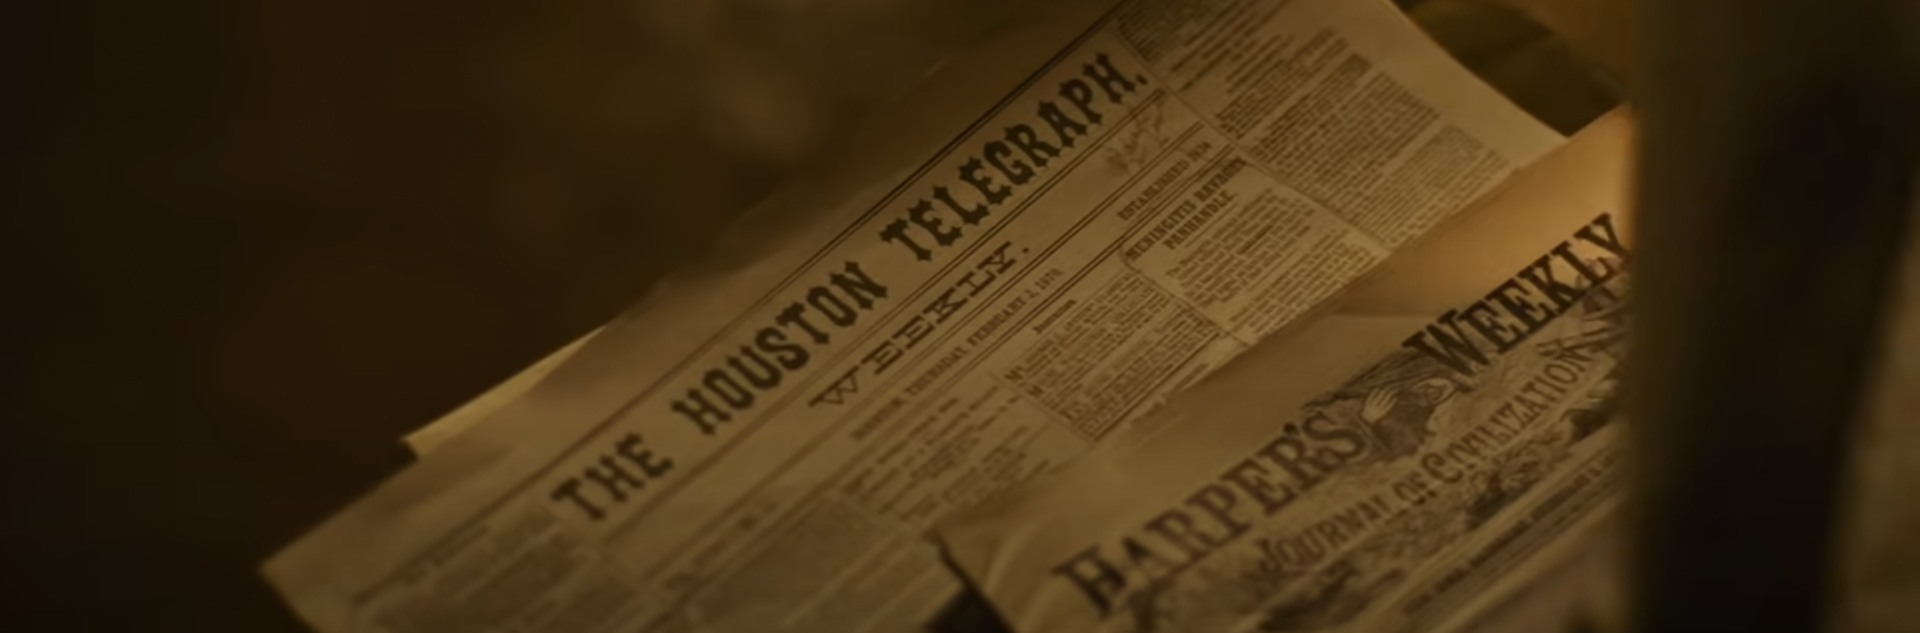 News of the World. Image Credit: Universal Pictures.